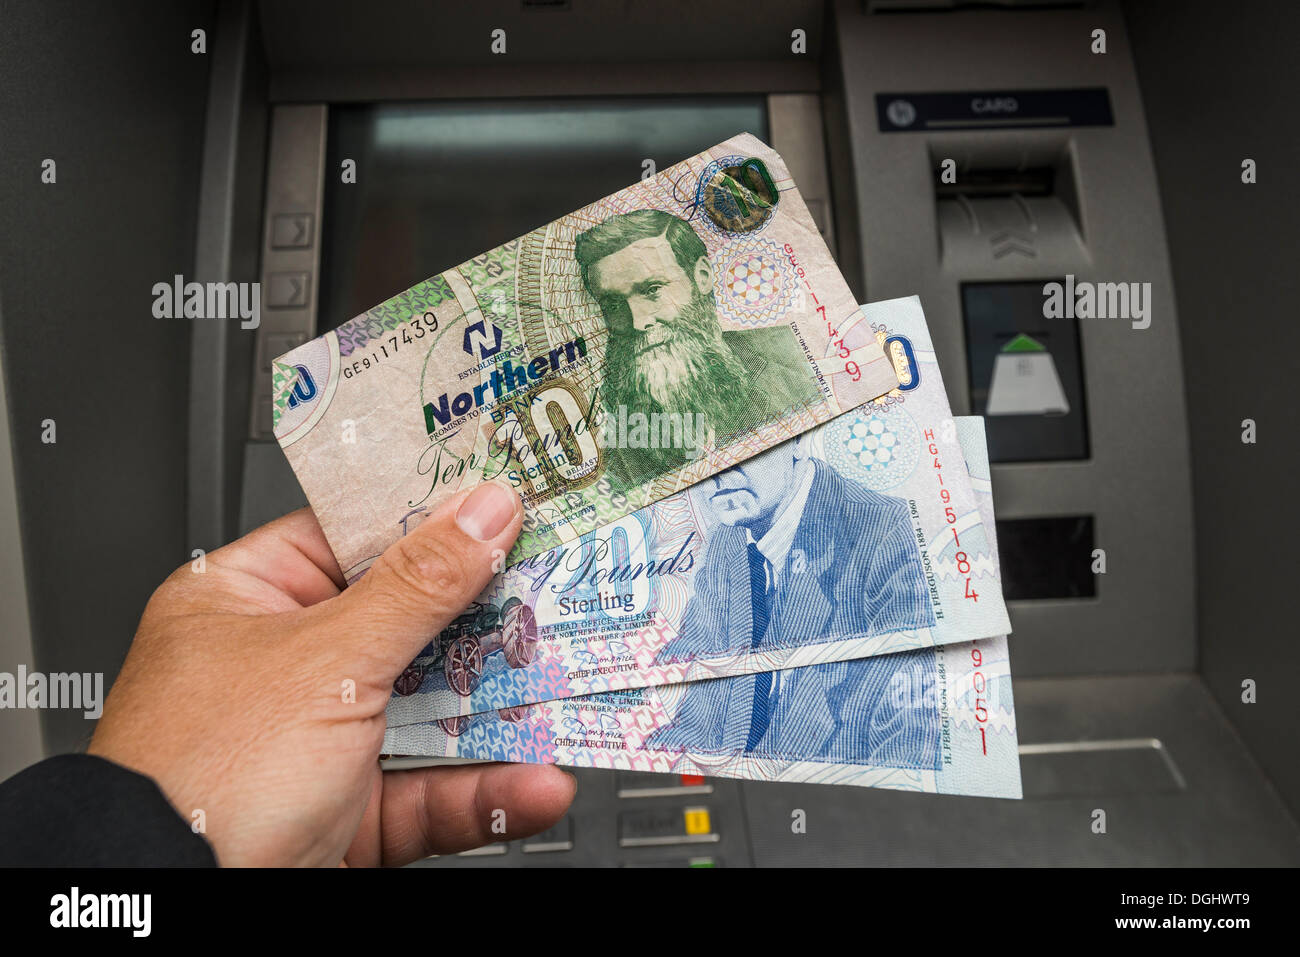 Northern Ireland 10 and 20 pound notes held in a hand in front of an ATM, Northern Ireland, United Kingdom - Stock Image